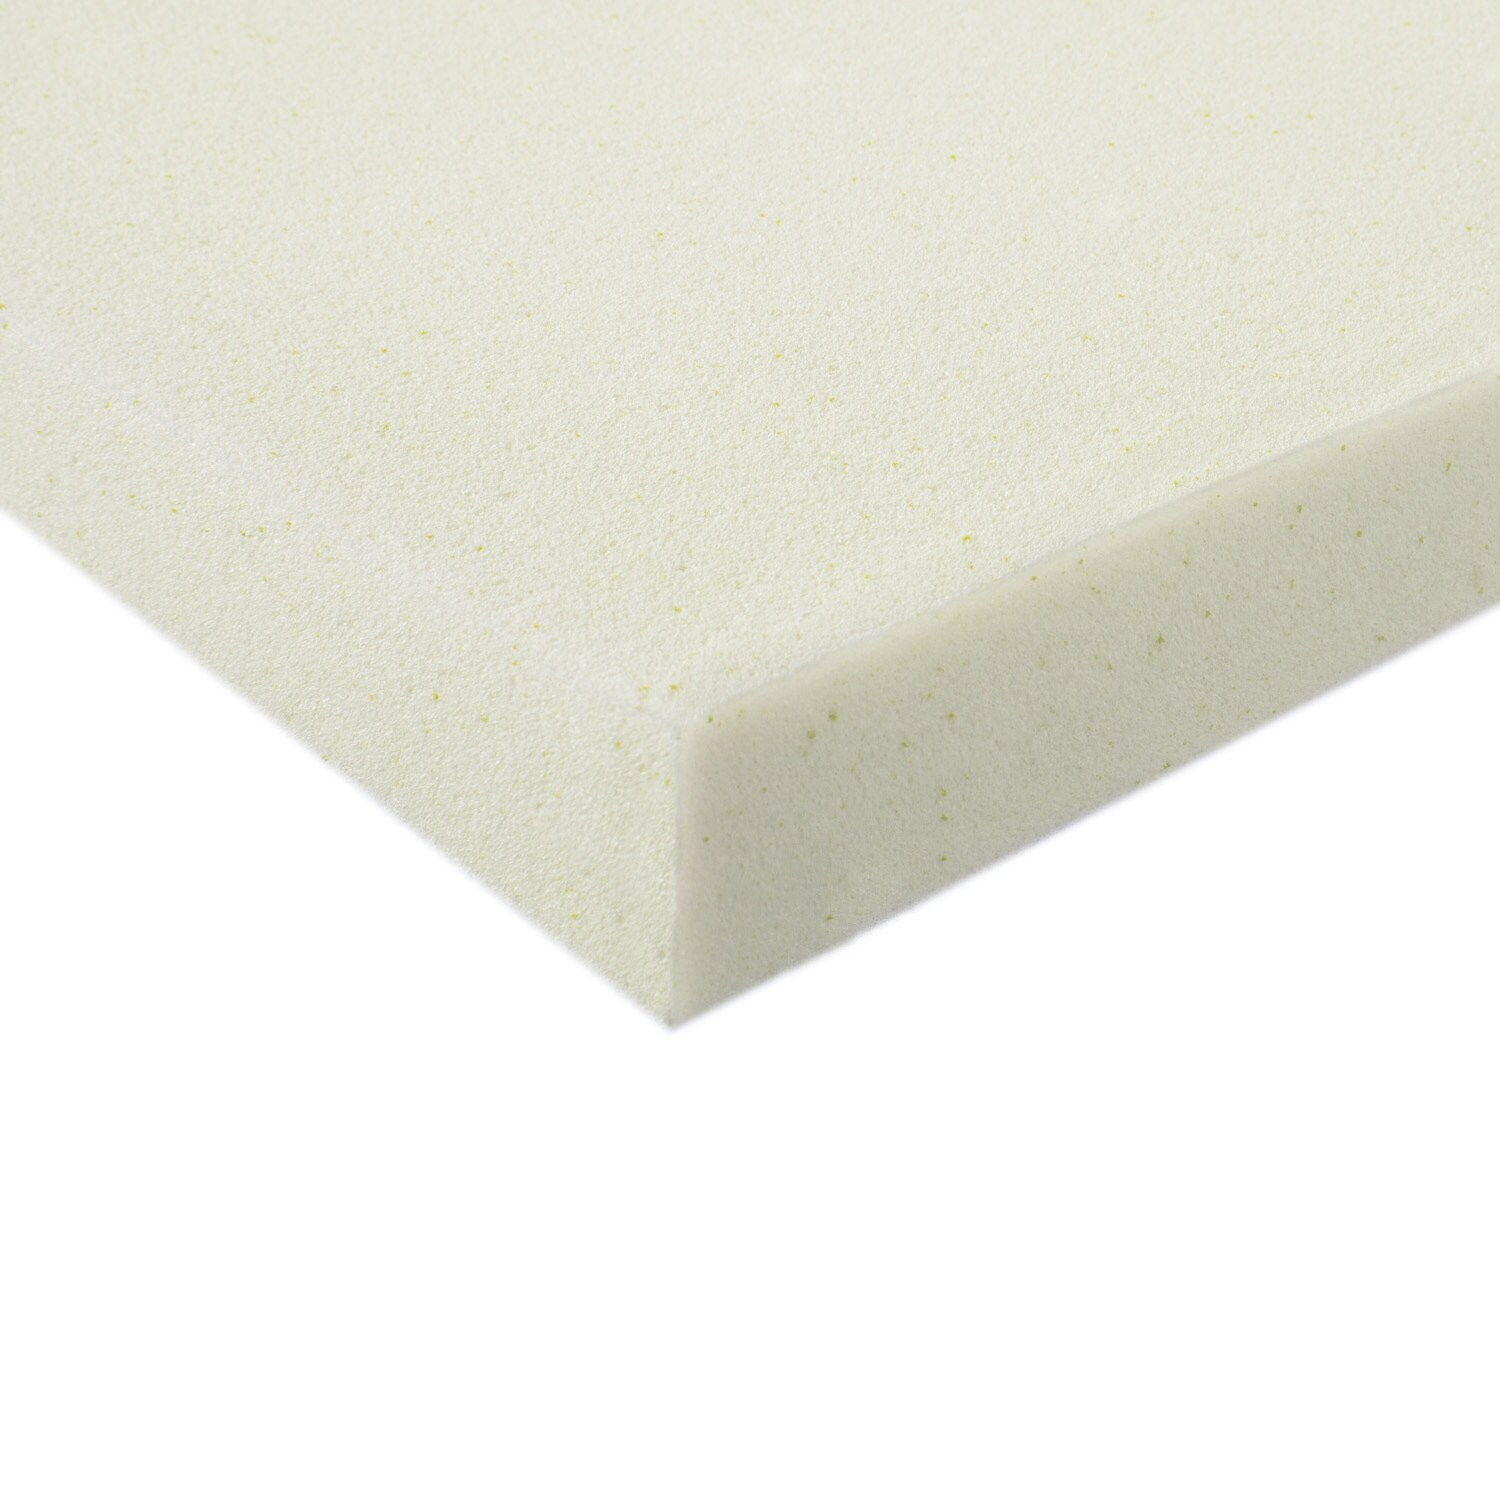 LUCID 2 inch Solid Foam Mattress Topper Free Shipping Orders